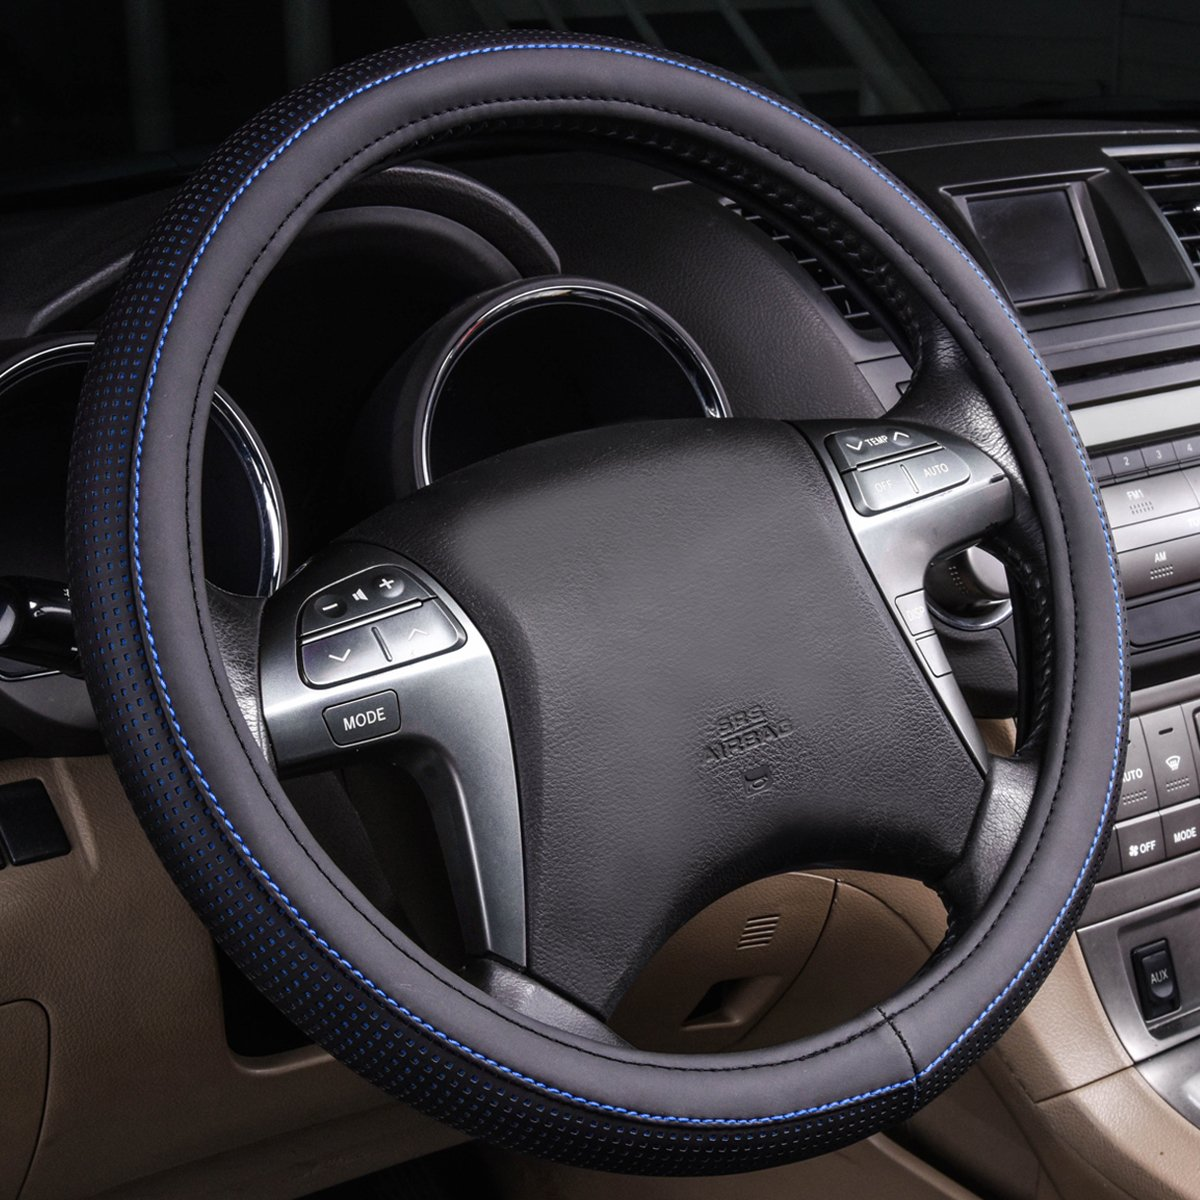 Cars,Suvs,Sedans,Trucks LJ CAR PASS Double Layers Cool Universal Leather Steering Wheel Cover with Perforated Breathable Design Sky Blue